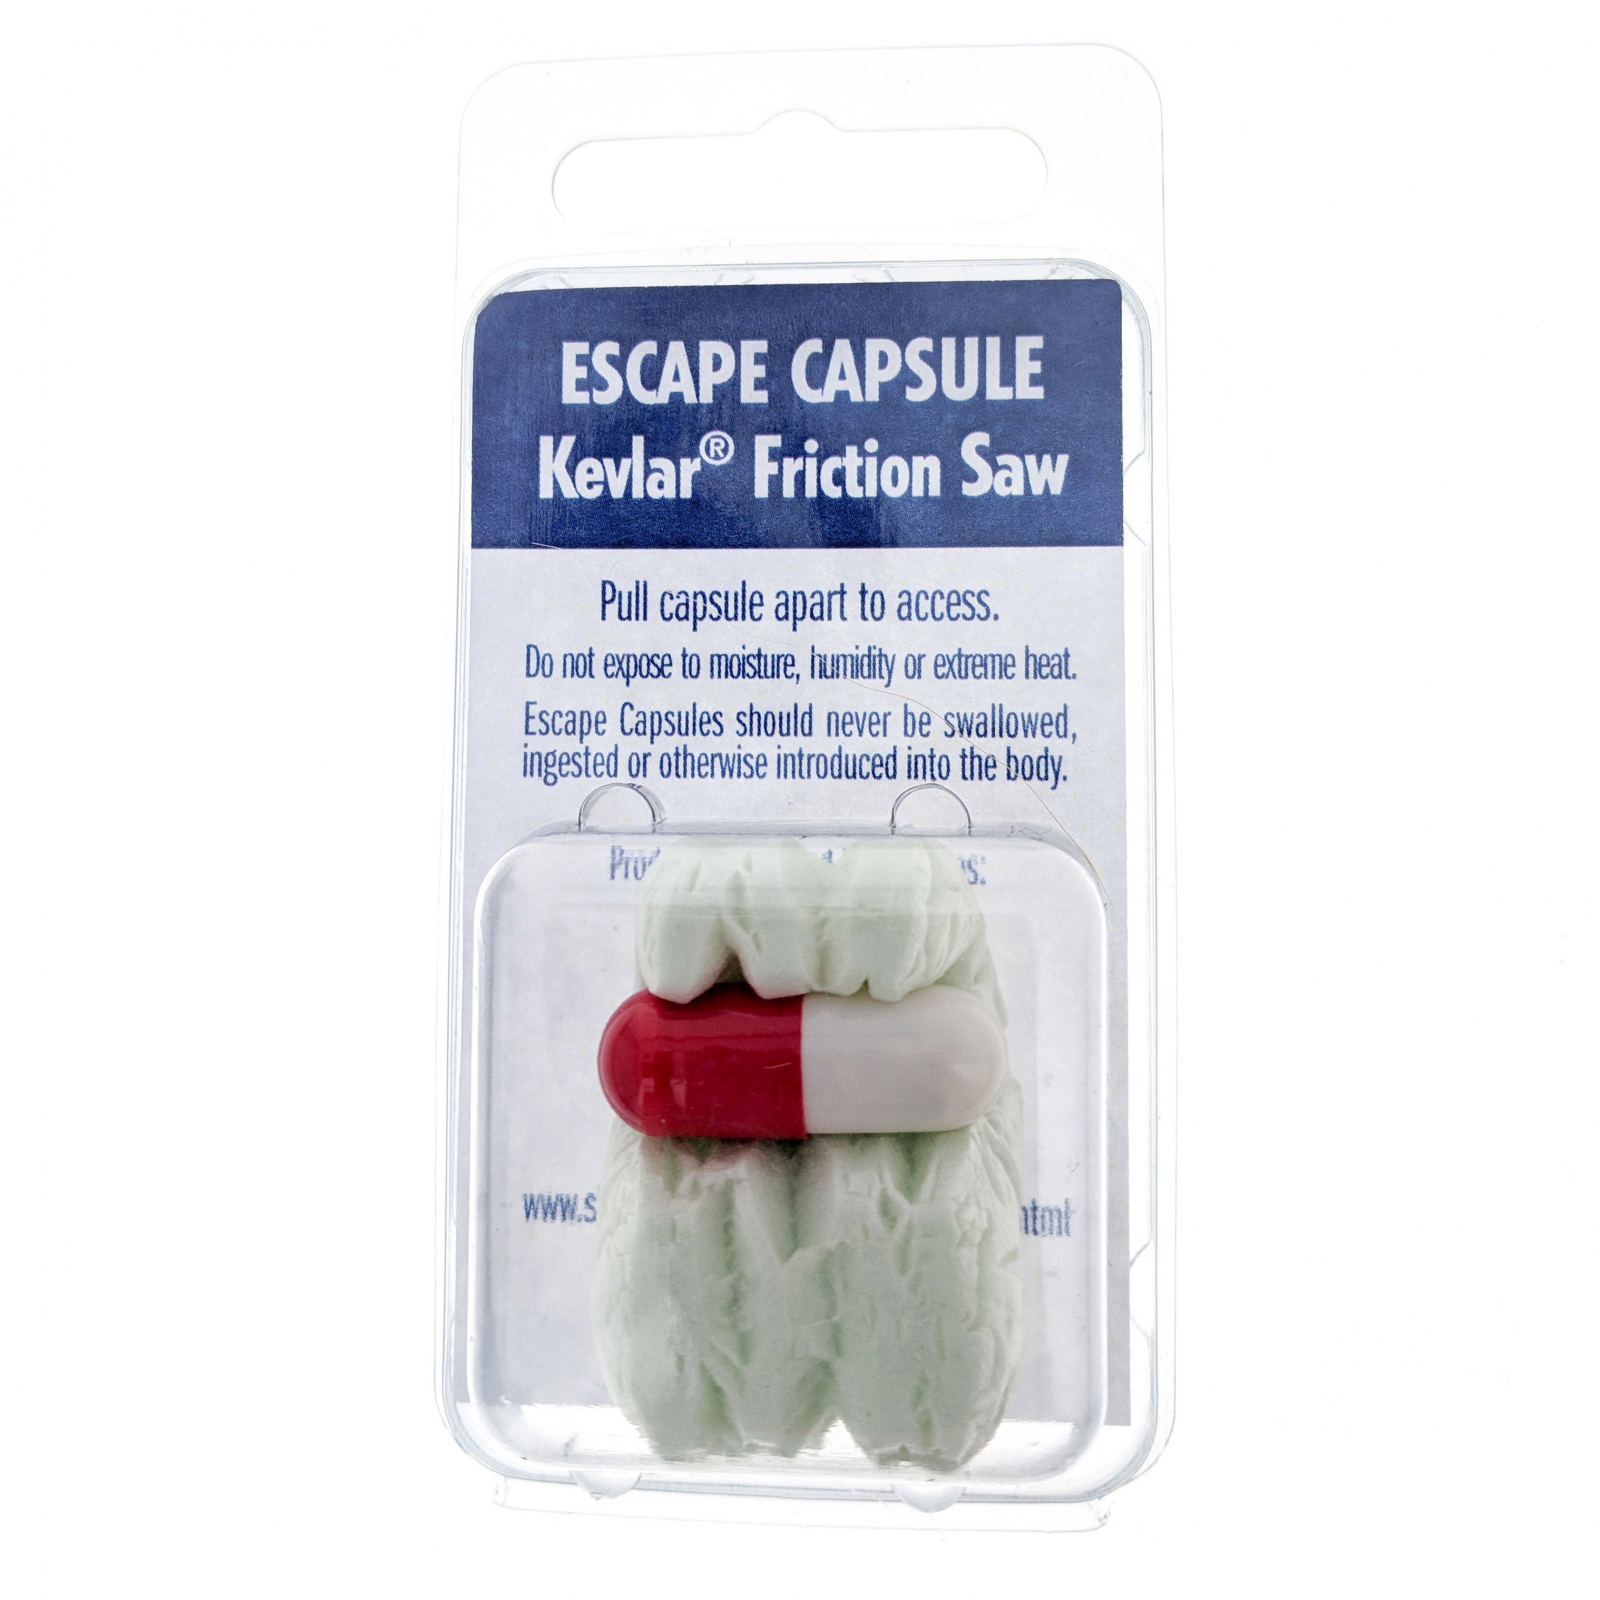 Shomer-Tec Escape Capsule Covert Kevlar Friction Saw Concealed Survival Tool